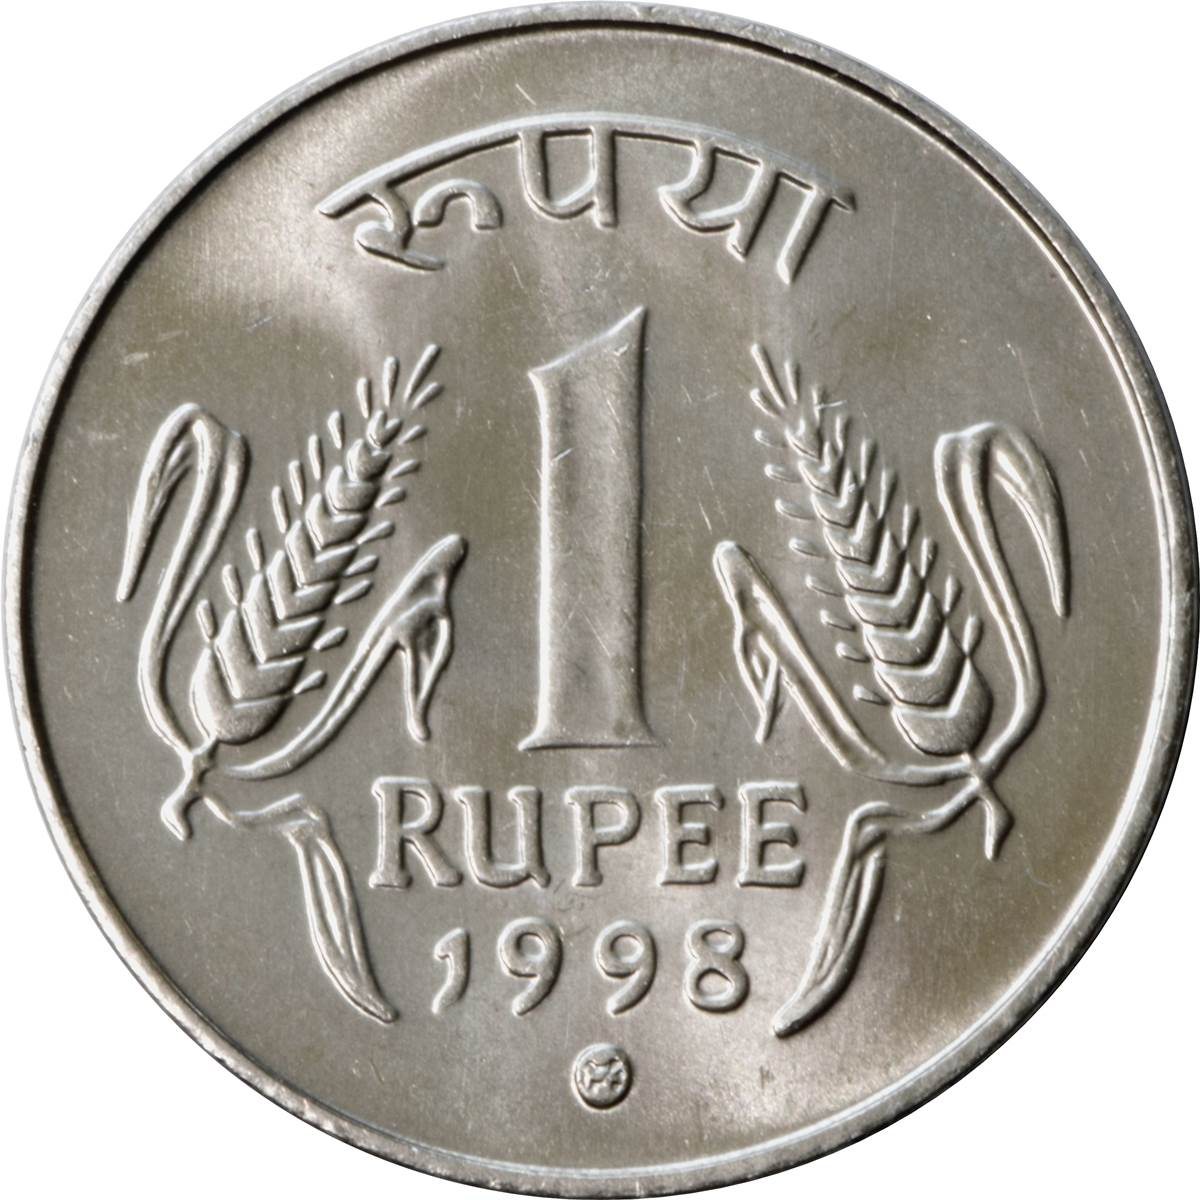 an one rupee coin